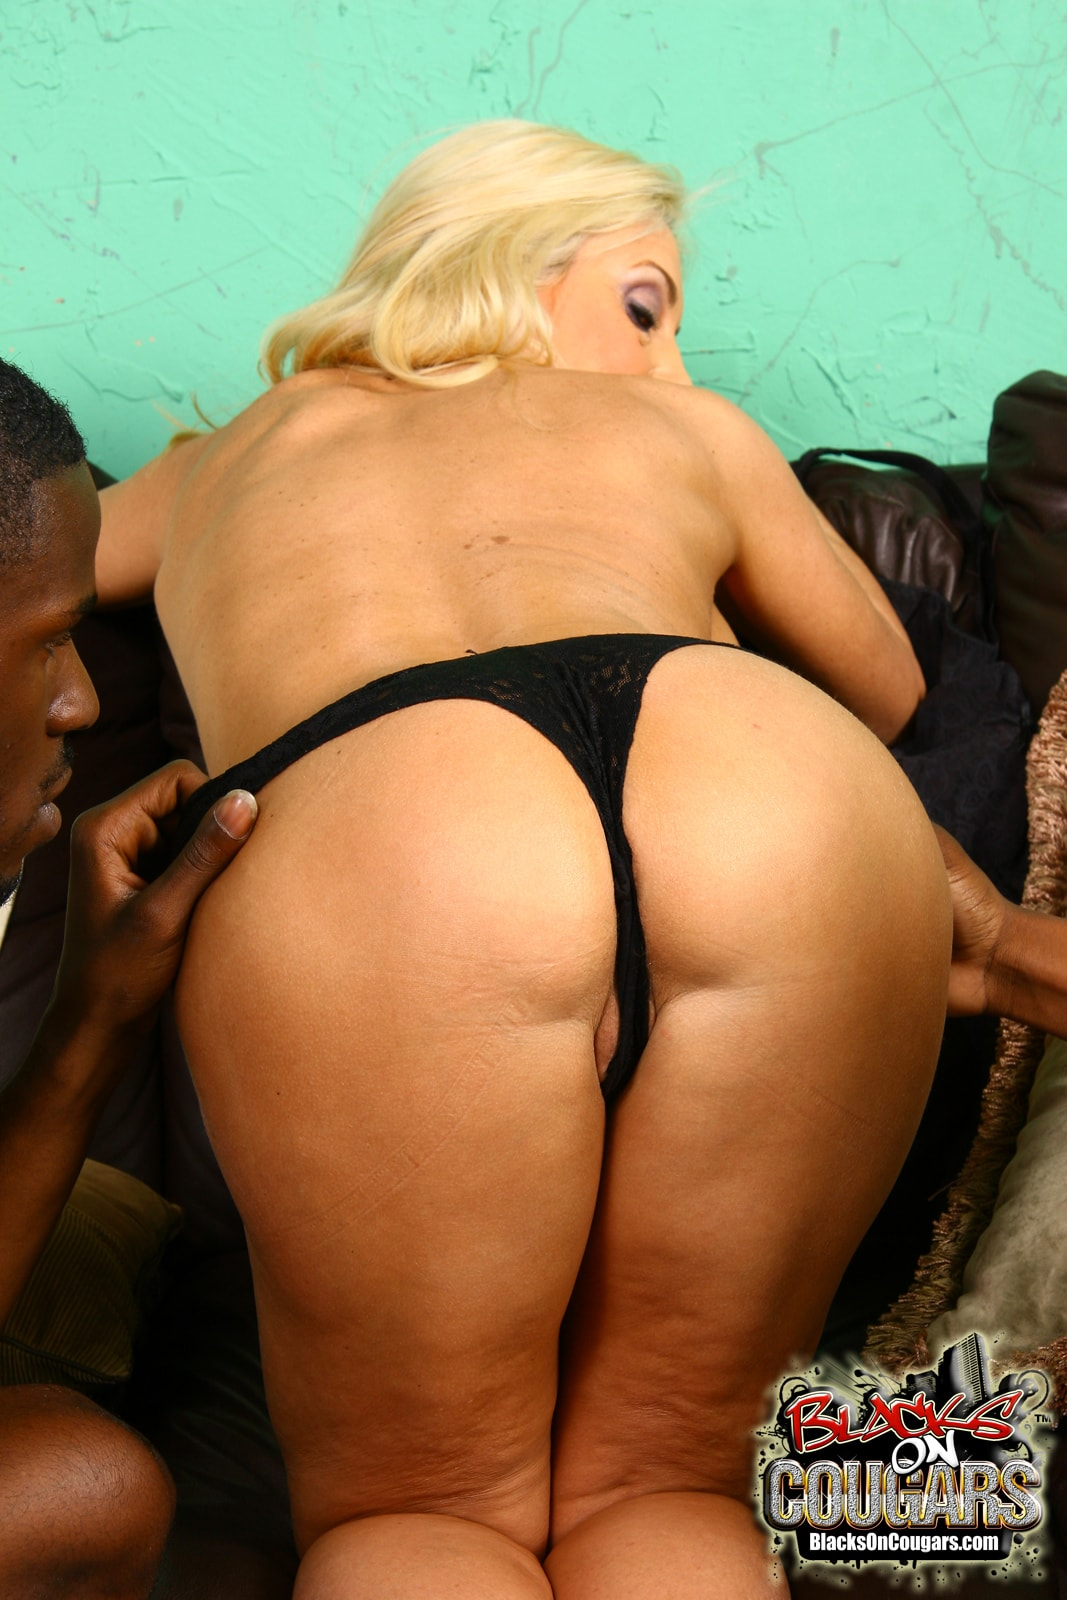 Dogfart '- Blacks On Cougars' starring Cala Craves (Photo 18)